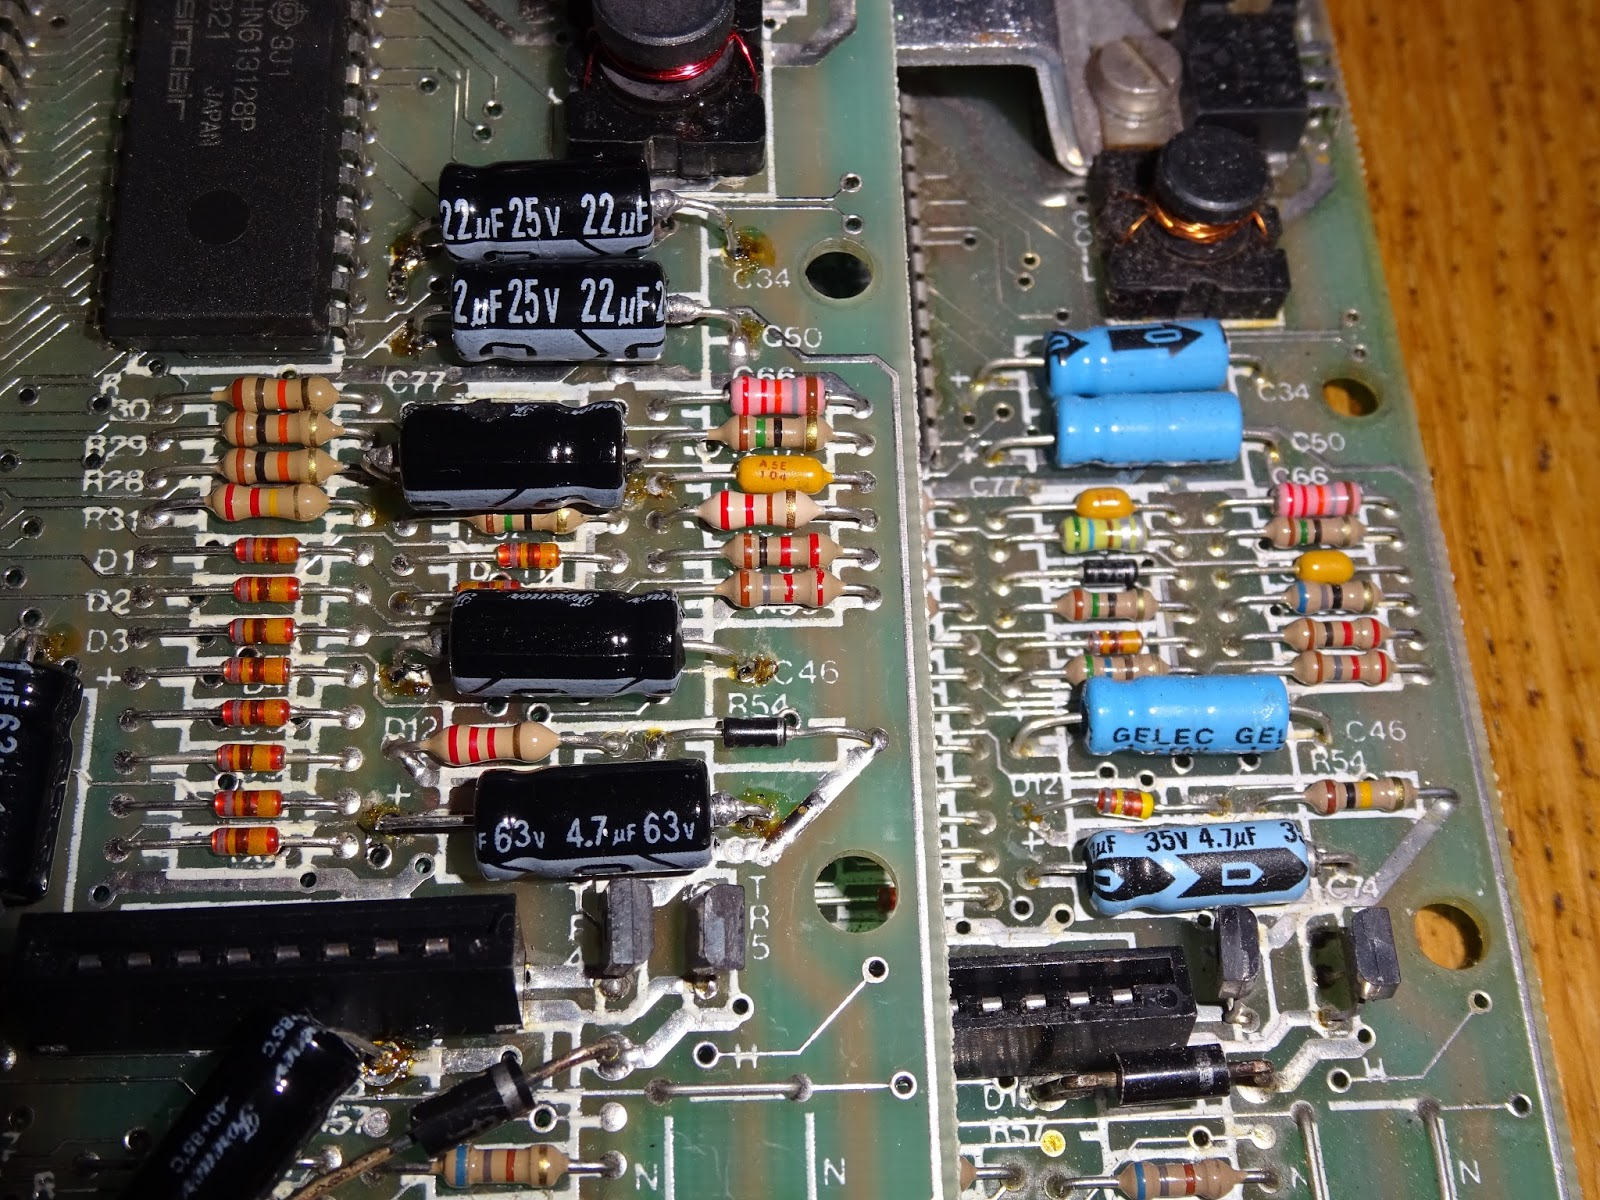 tynemouth software zx spectrum 4 out of memory error repair